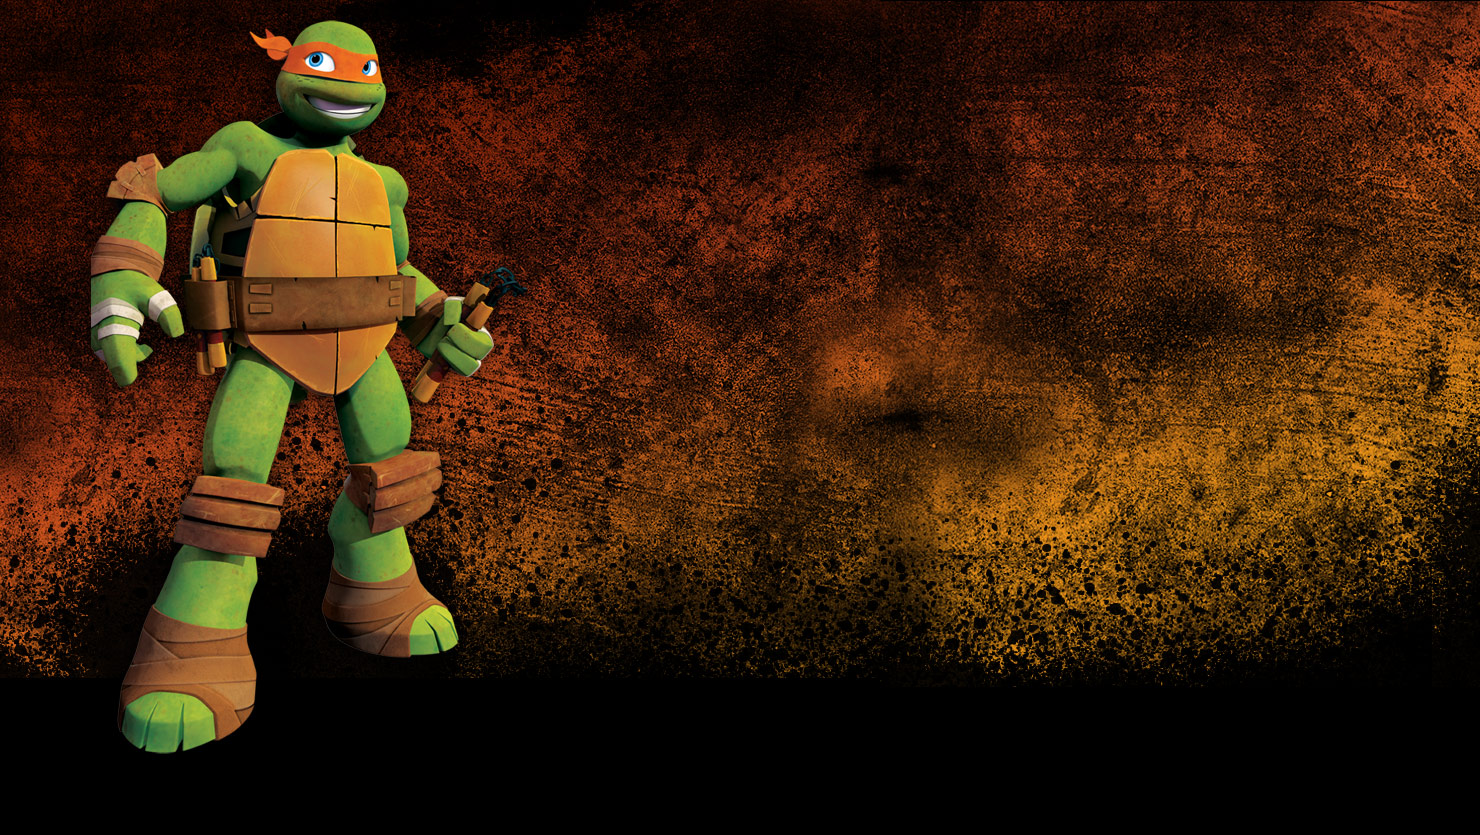 TMNT 2012 wallpapers (3) 1480x835